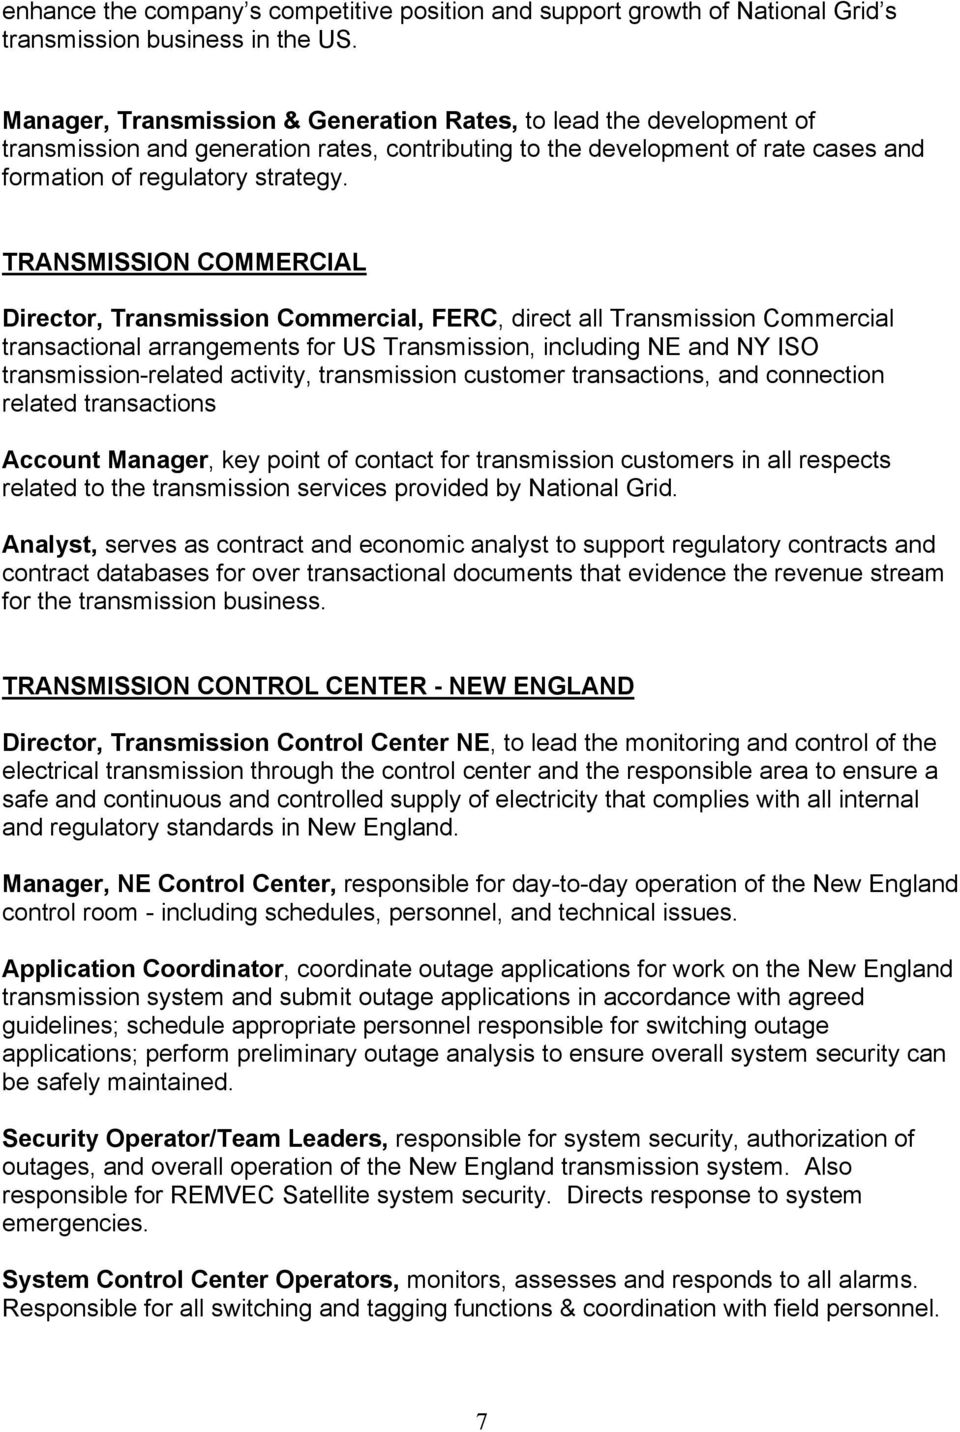 TRANSMISSION COMMERCIAL Director, Transmission Commercial, FERC, direct all Transmission Commercial transactional arrangements for US Transmission, including NE and NY ISO transmission-related